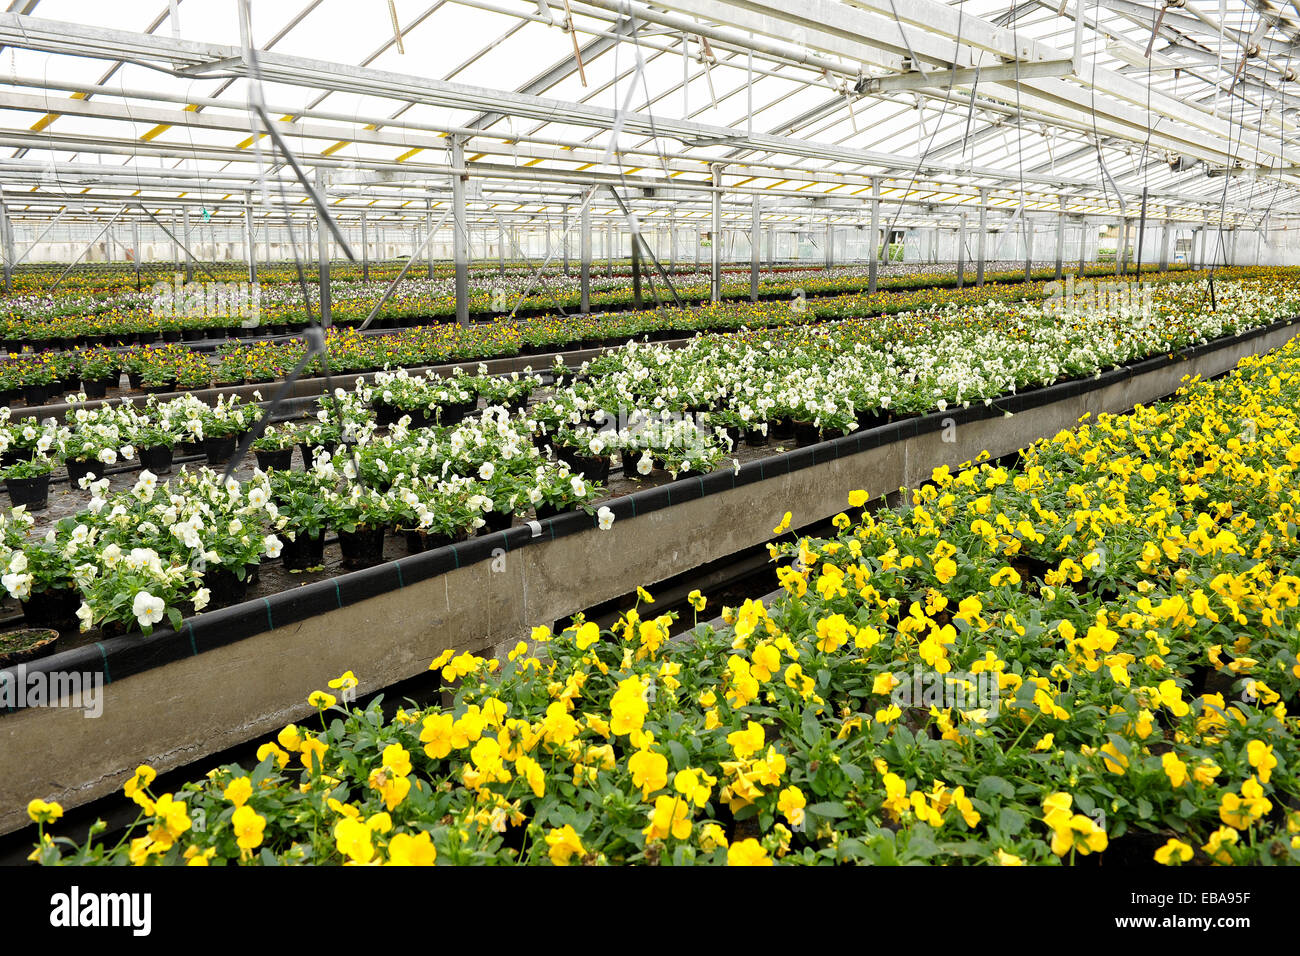 Tables of potted colorful violets being cultivated in a greenhouse at a nursery or horticultural farm for sale as - Stock Image